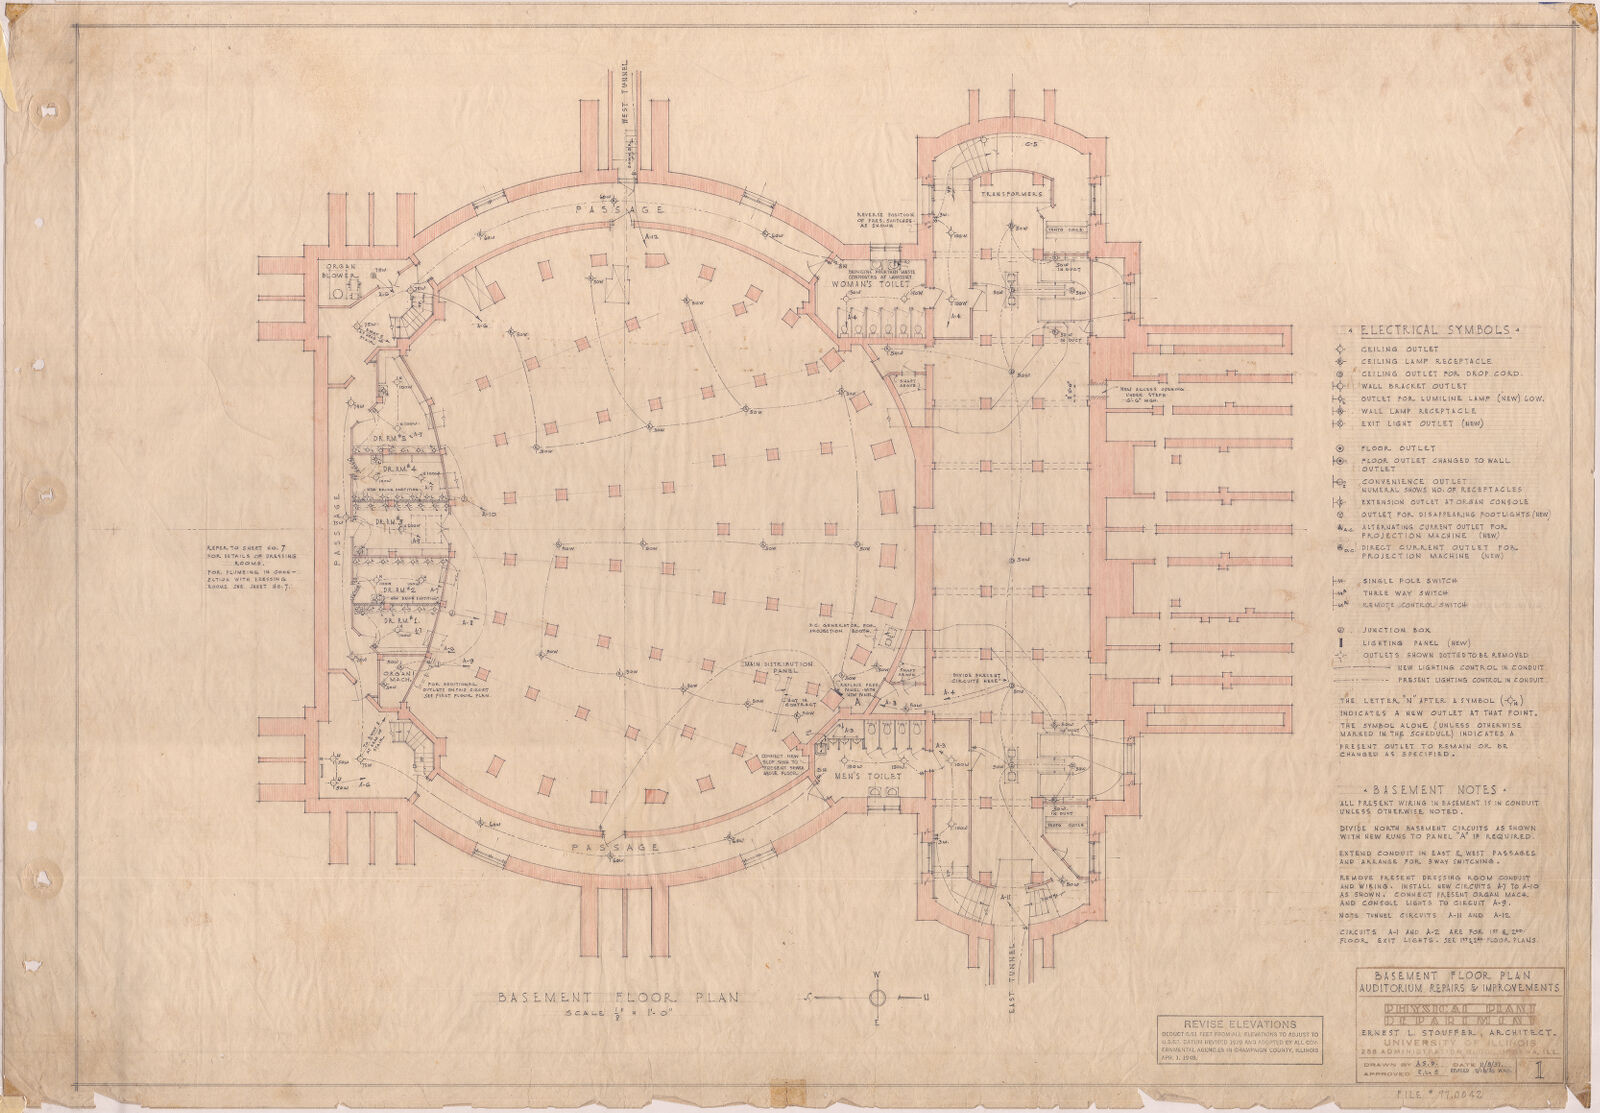 Basement Floor Plan Auditorium Repairs Improvements 1937 Electrical Wiring Diagram For Foellinger Digital Collections At The University Of Illinois Urbana Champaign